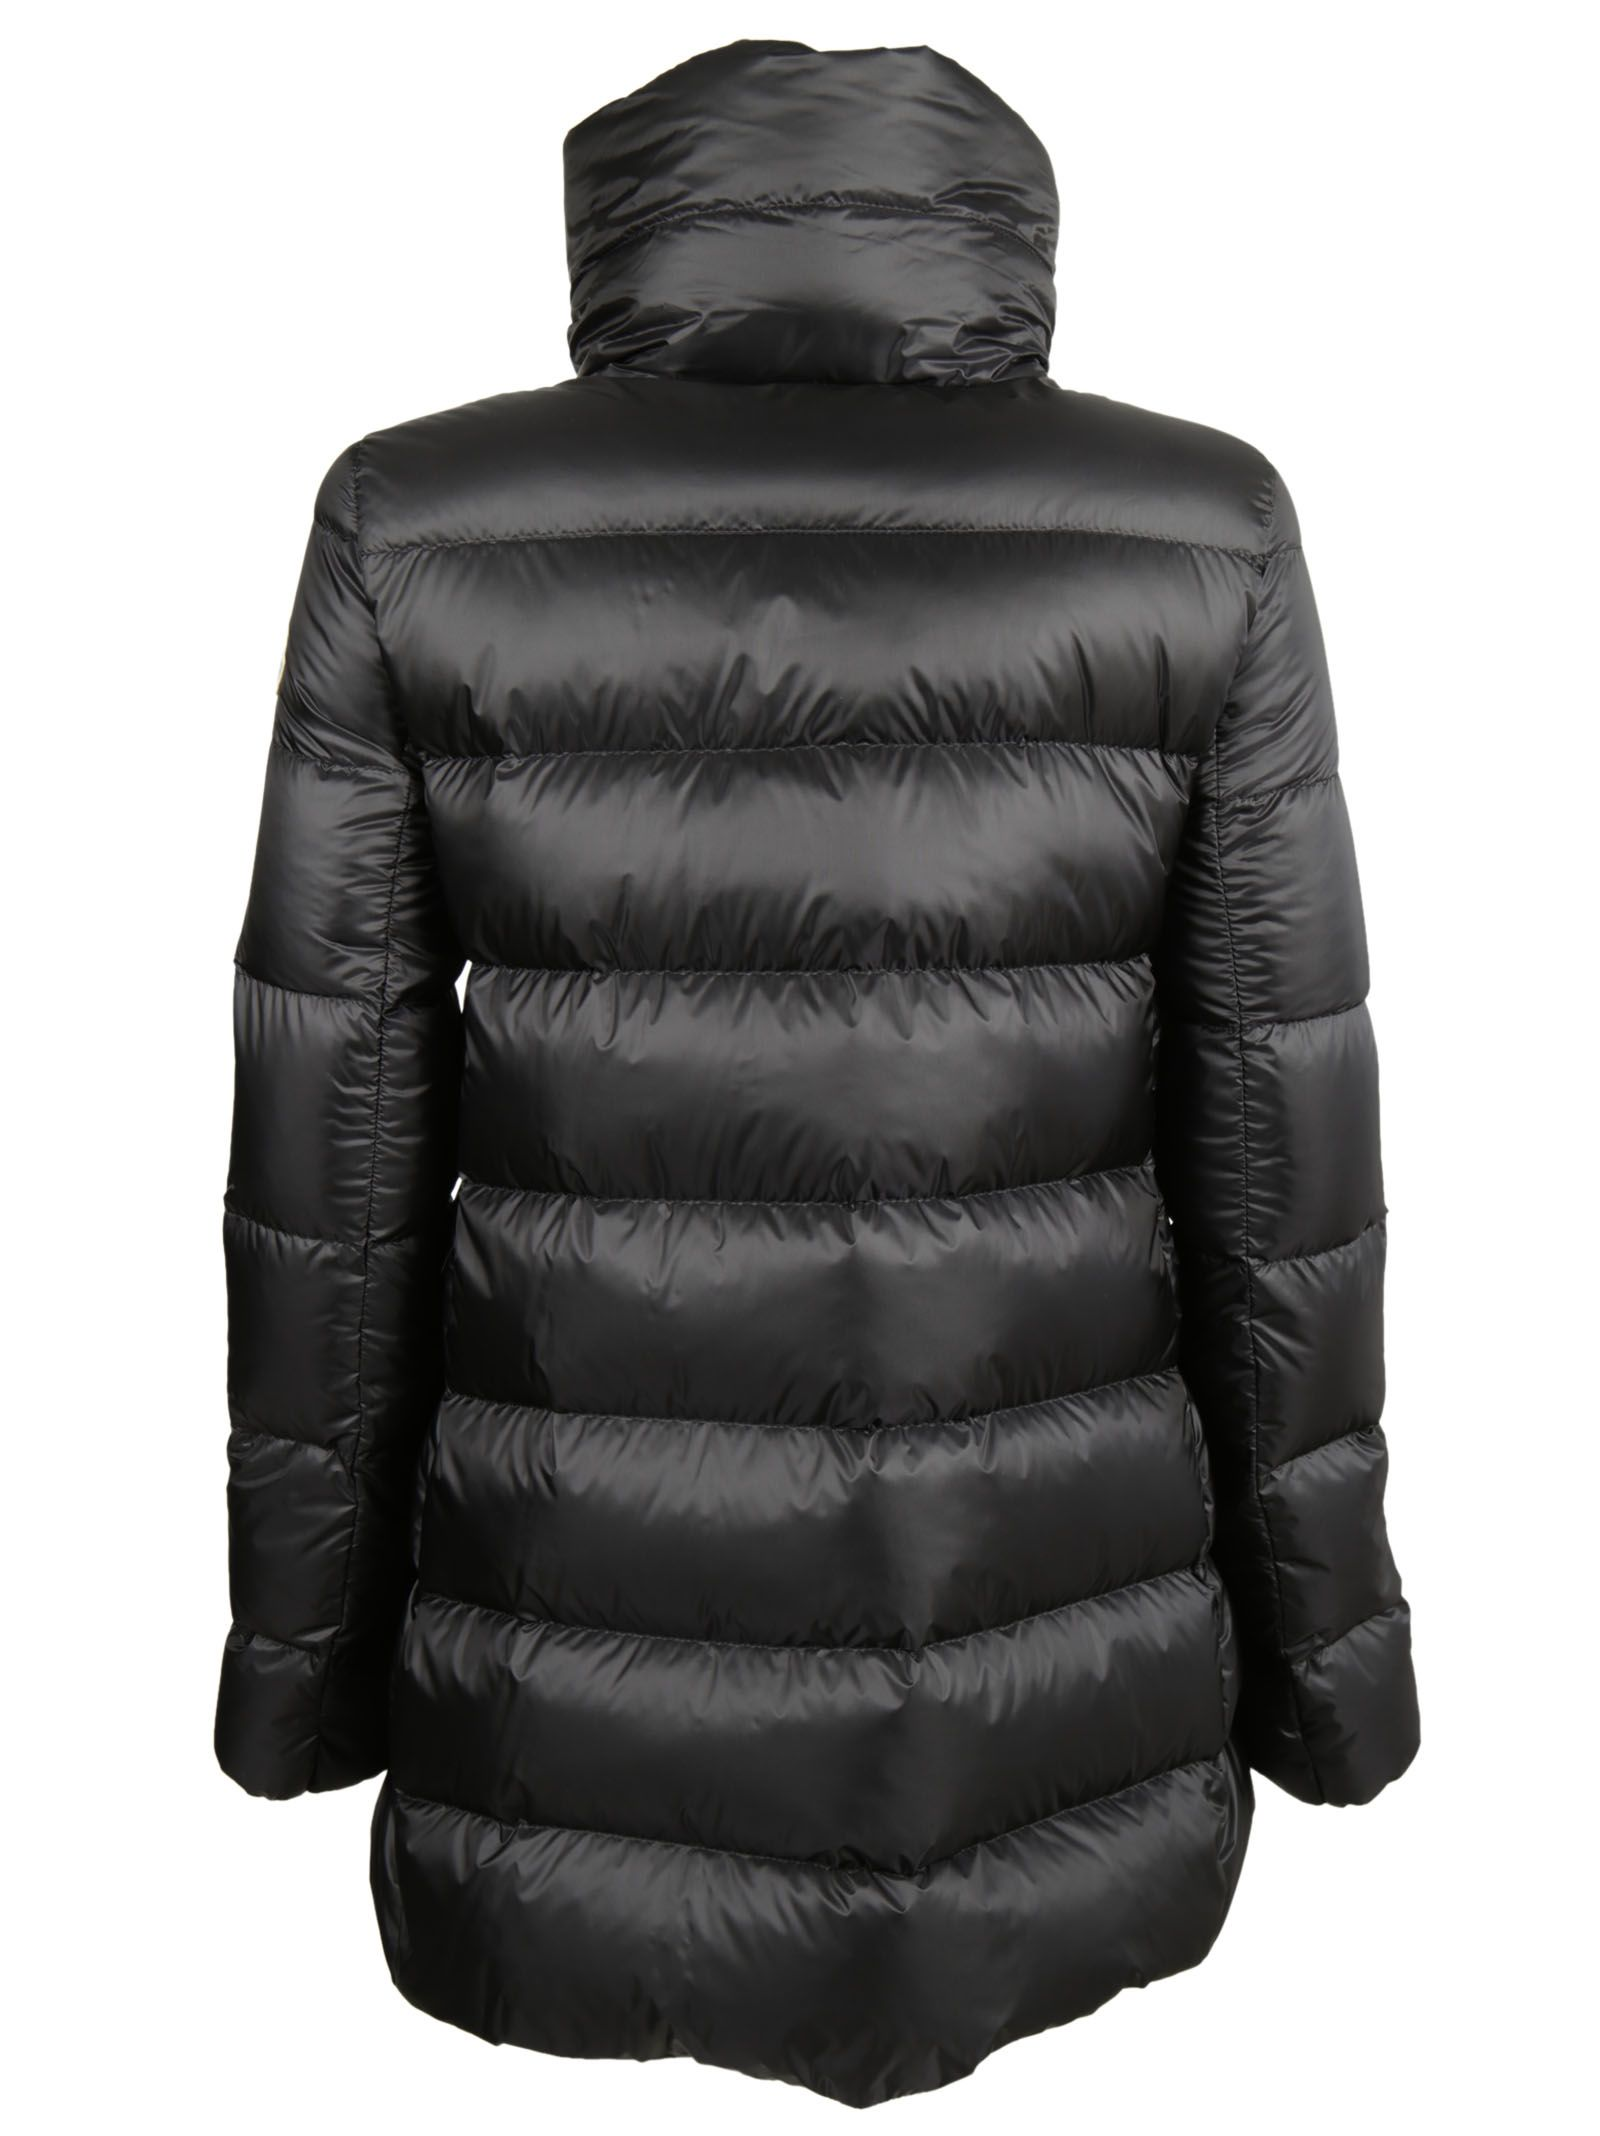 91b4c4648 buy moncler vest farfetch quest 1e90b 42a98